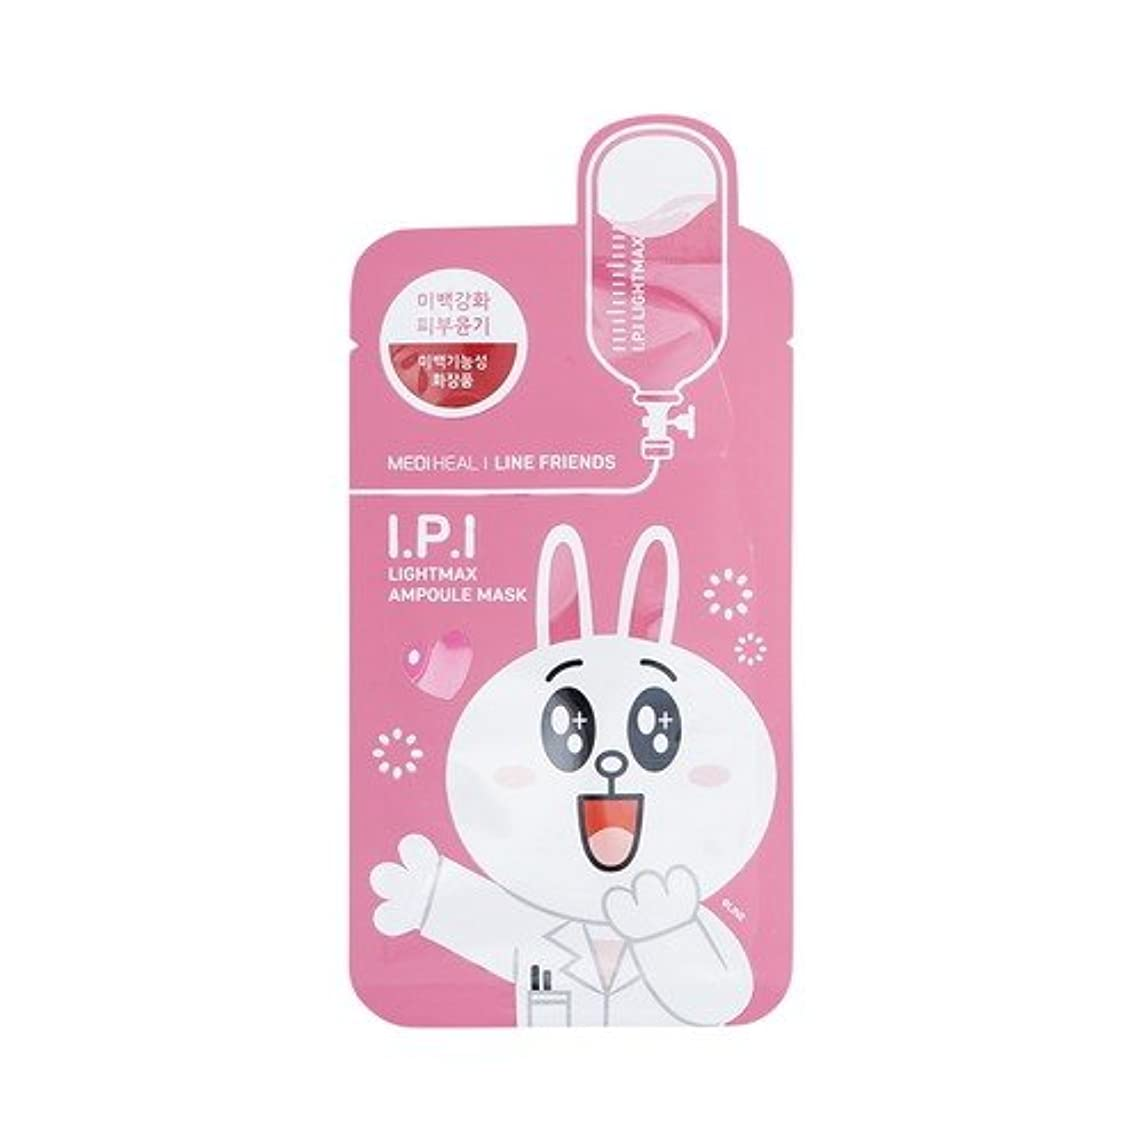 資金サスティーン準備ができて(3 Pack) MEDIHEAL Line Friends I.P.I Lightmax Ampoule Face Mask (並行輸入品)